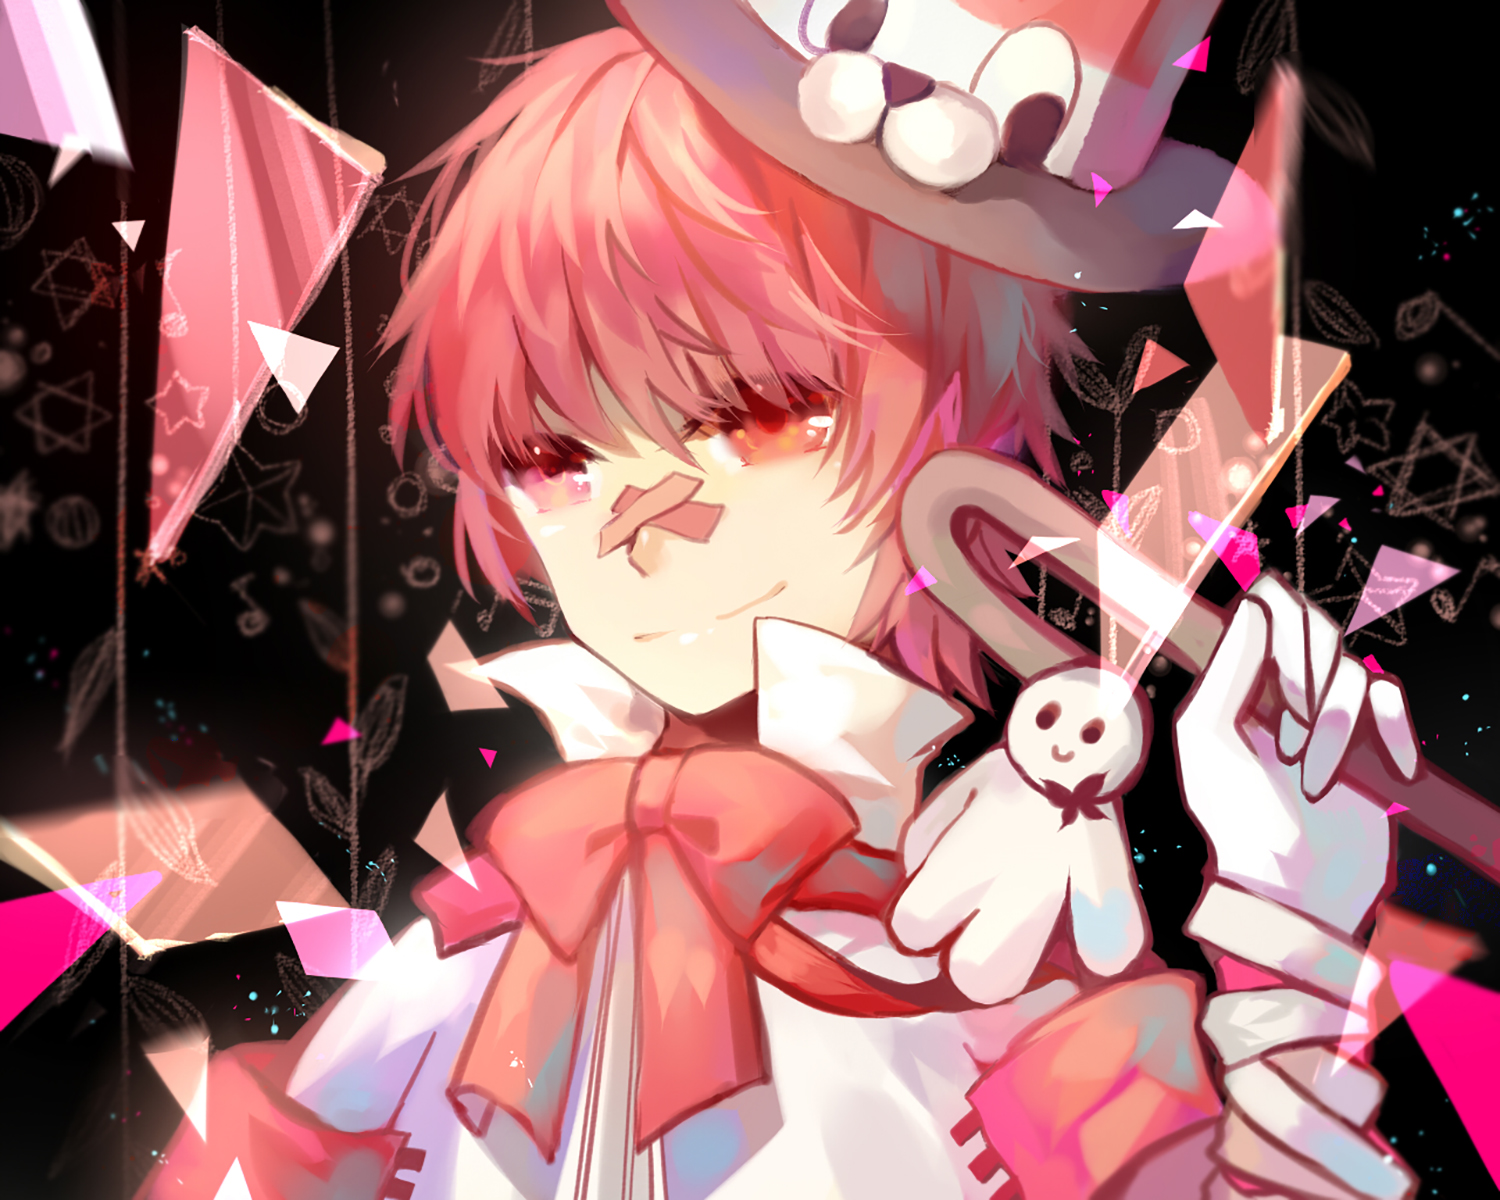 Hd Boy And Girl Wallpaper Fukase Vocaloid Zerochan Anime Image Board